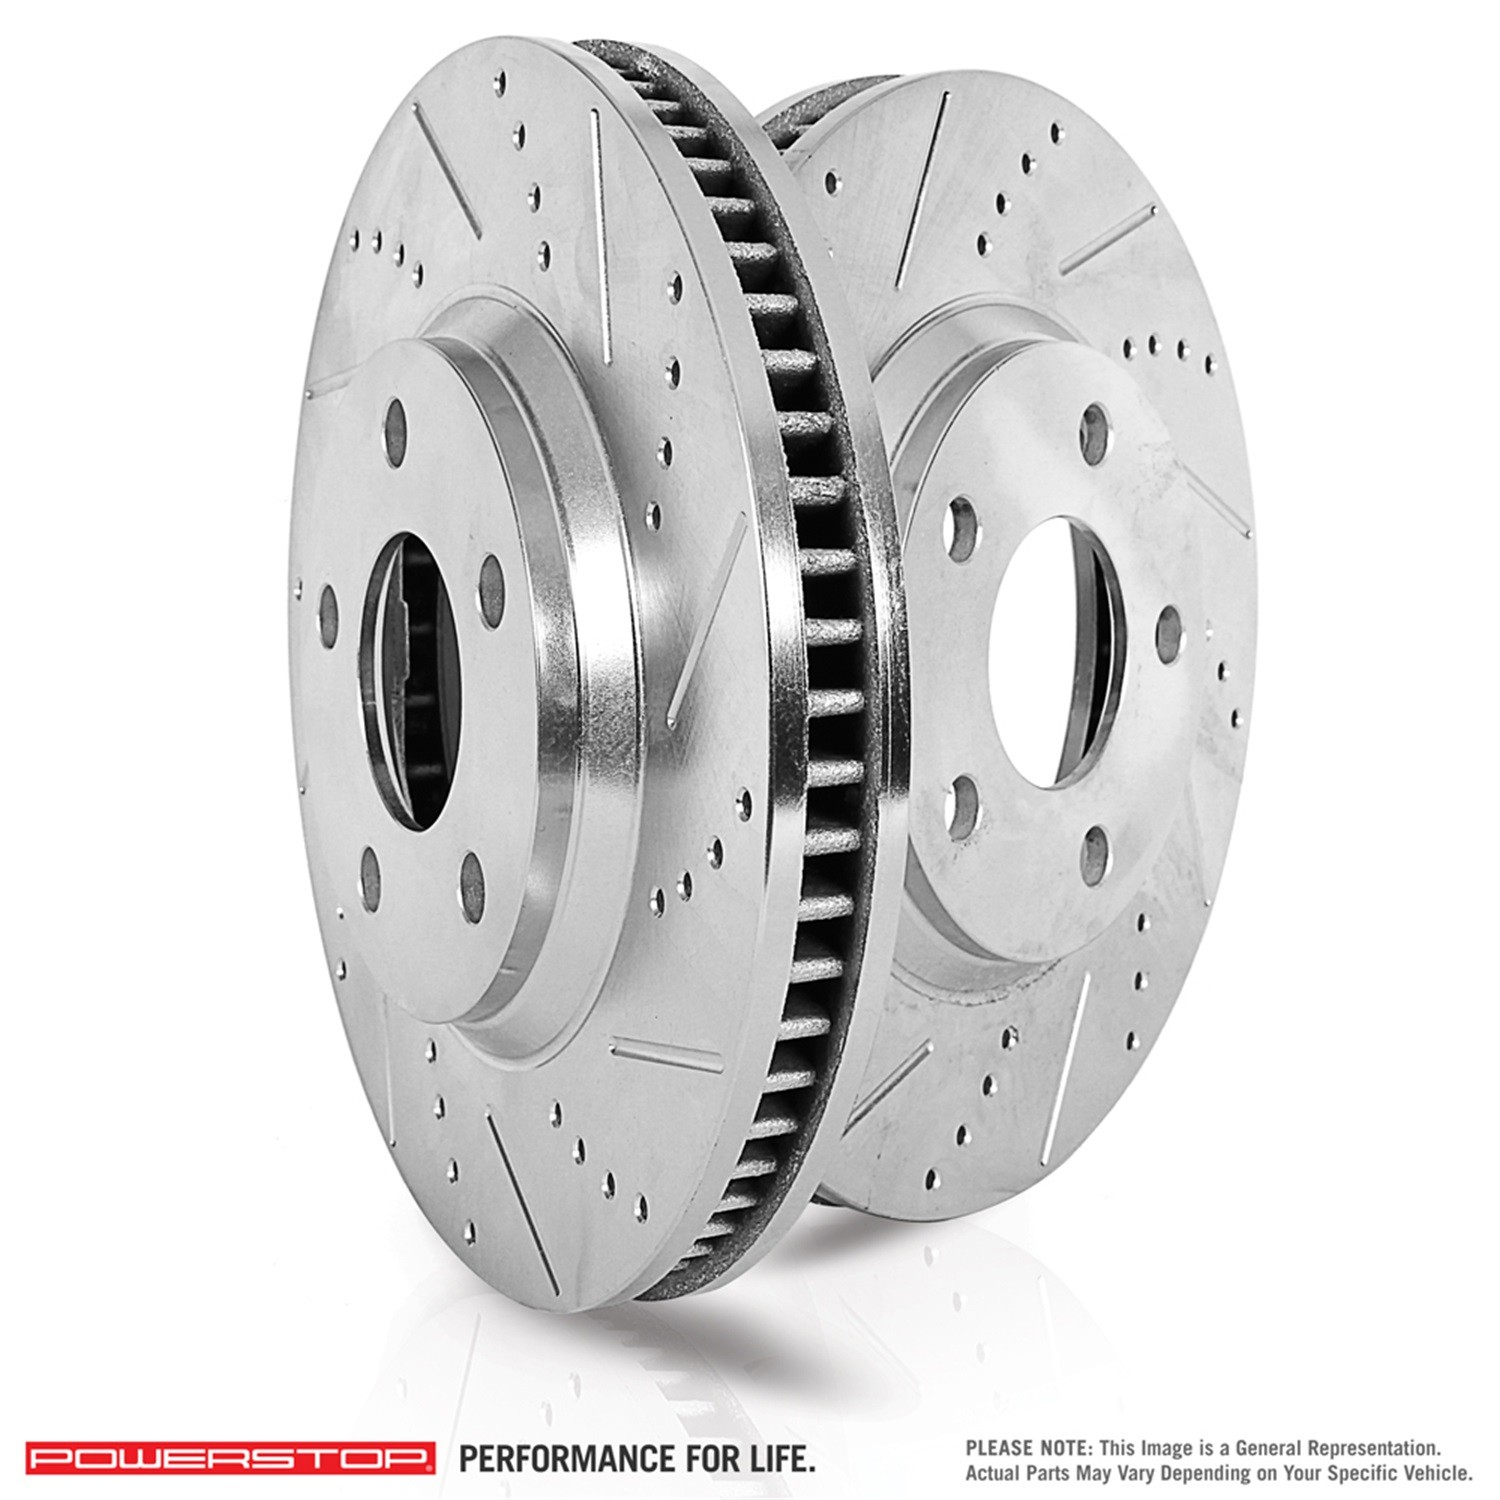 POWER STOP XPR - Power Stop Extreme Performance Drilled and Slotted Brake Rotors (Rear) - PWX EBR491XPR